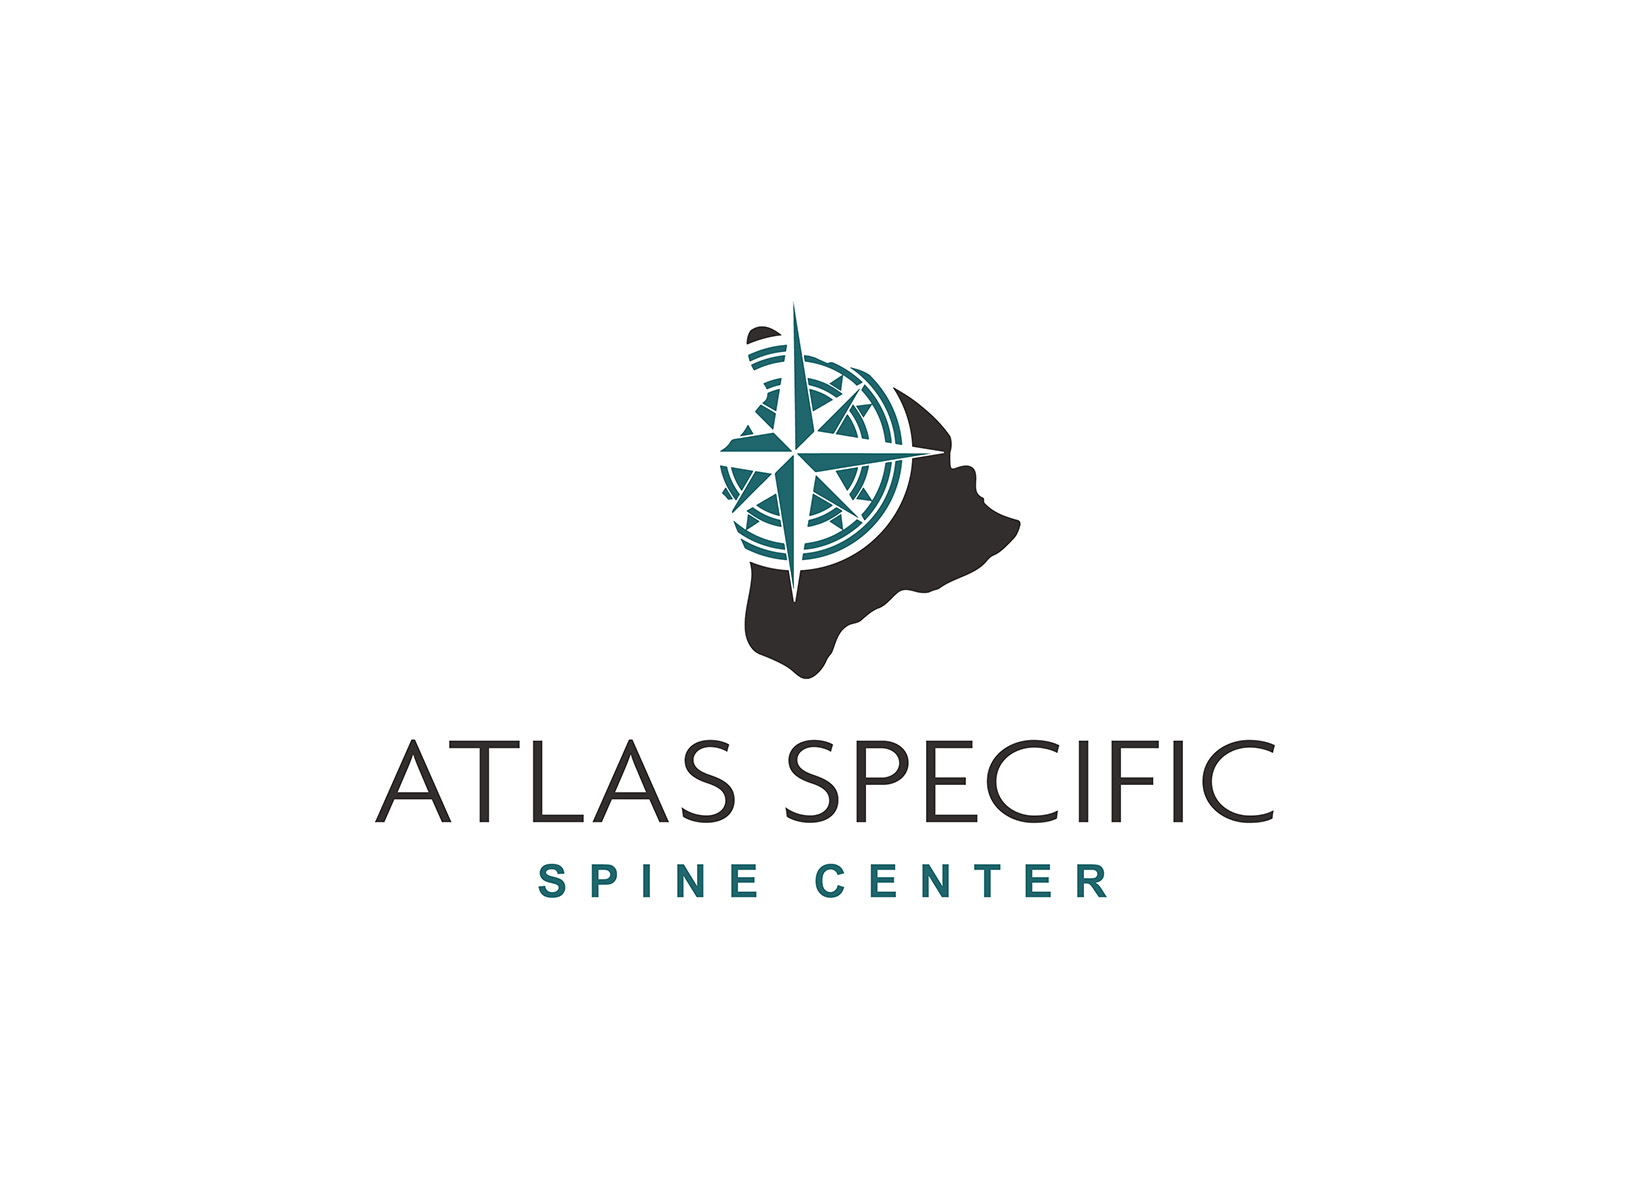 ATLAS SPECIFIC SPINE CENTER